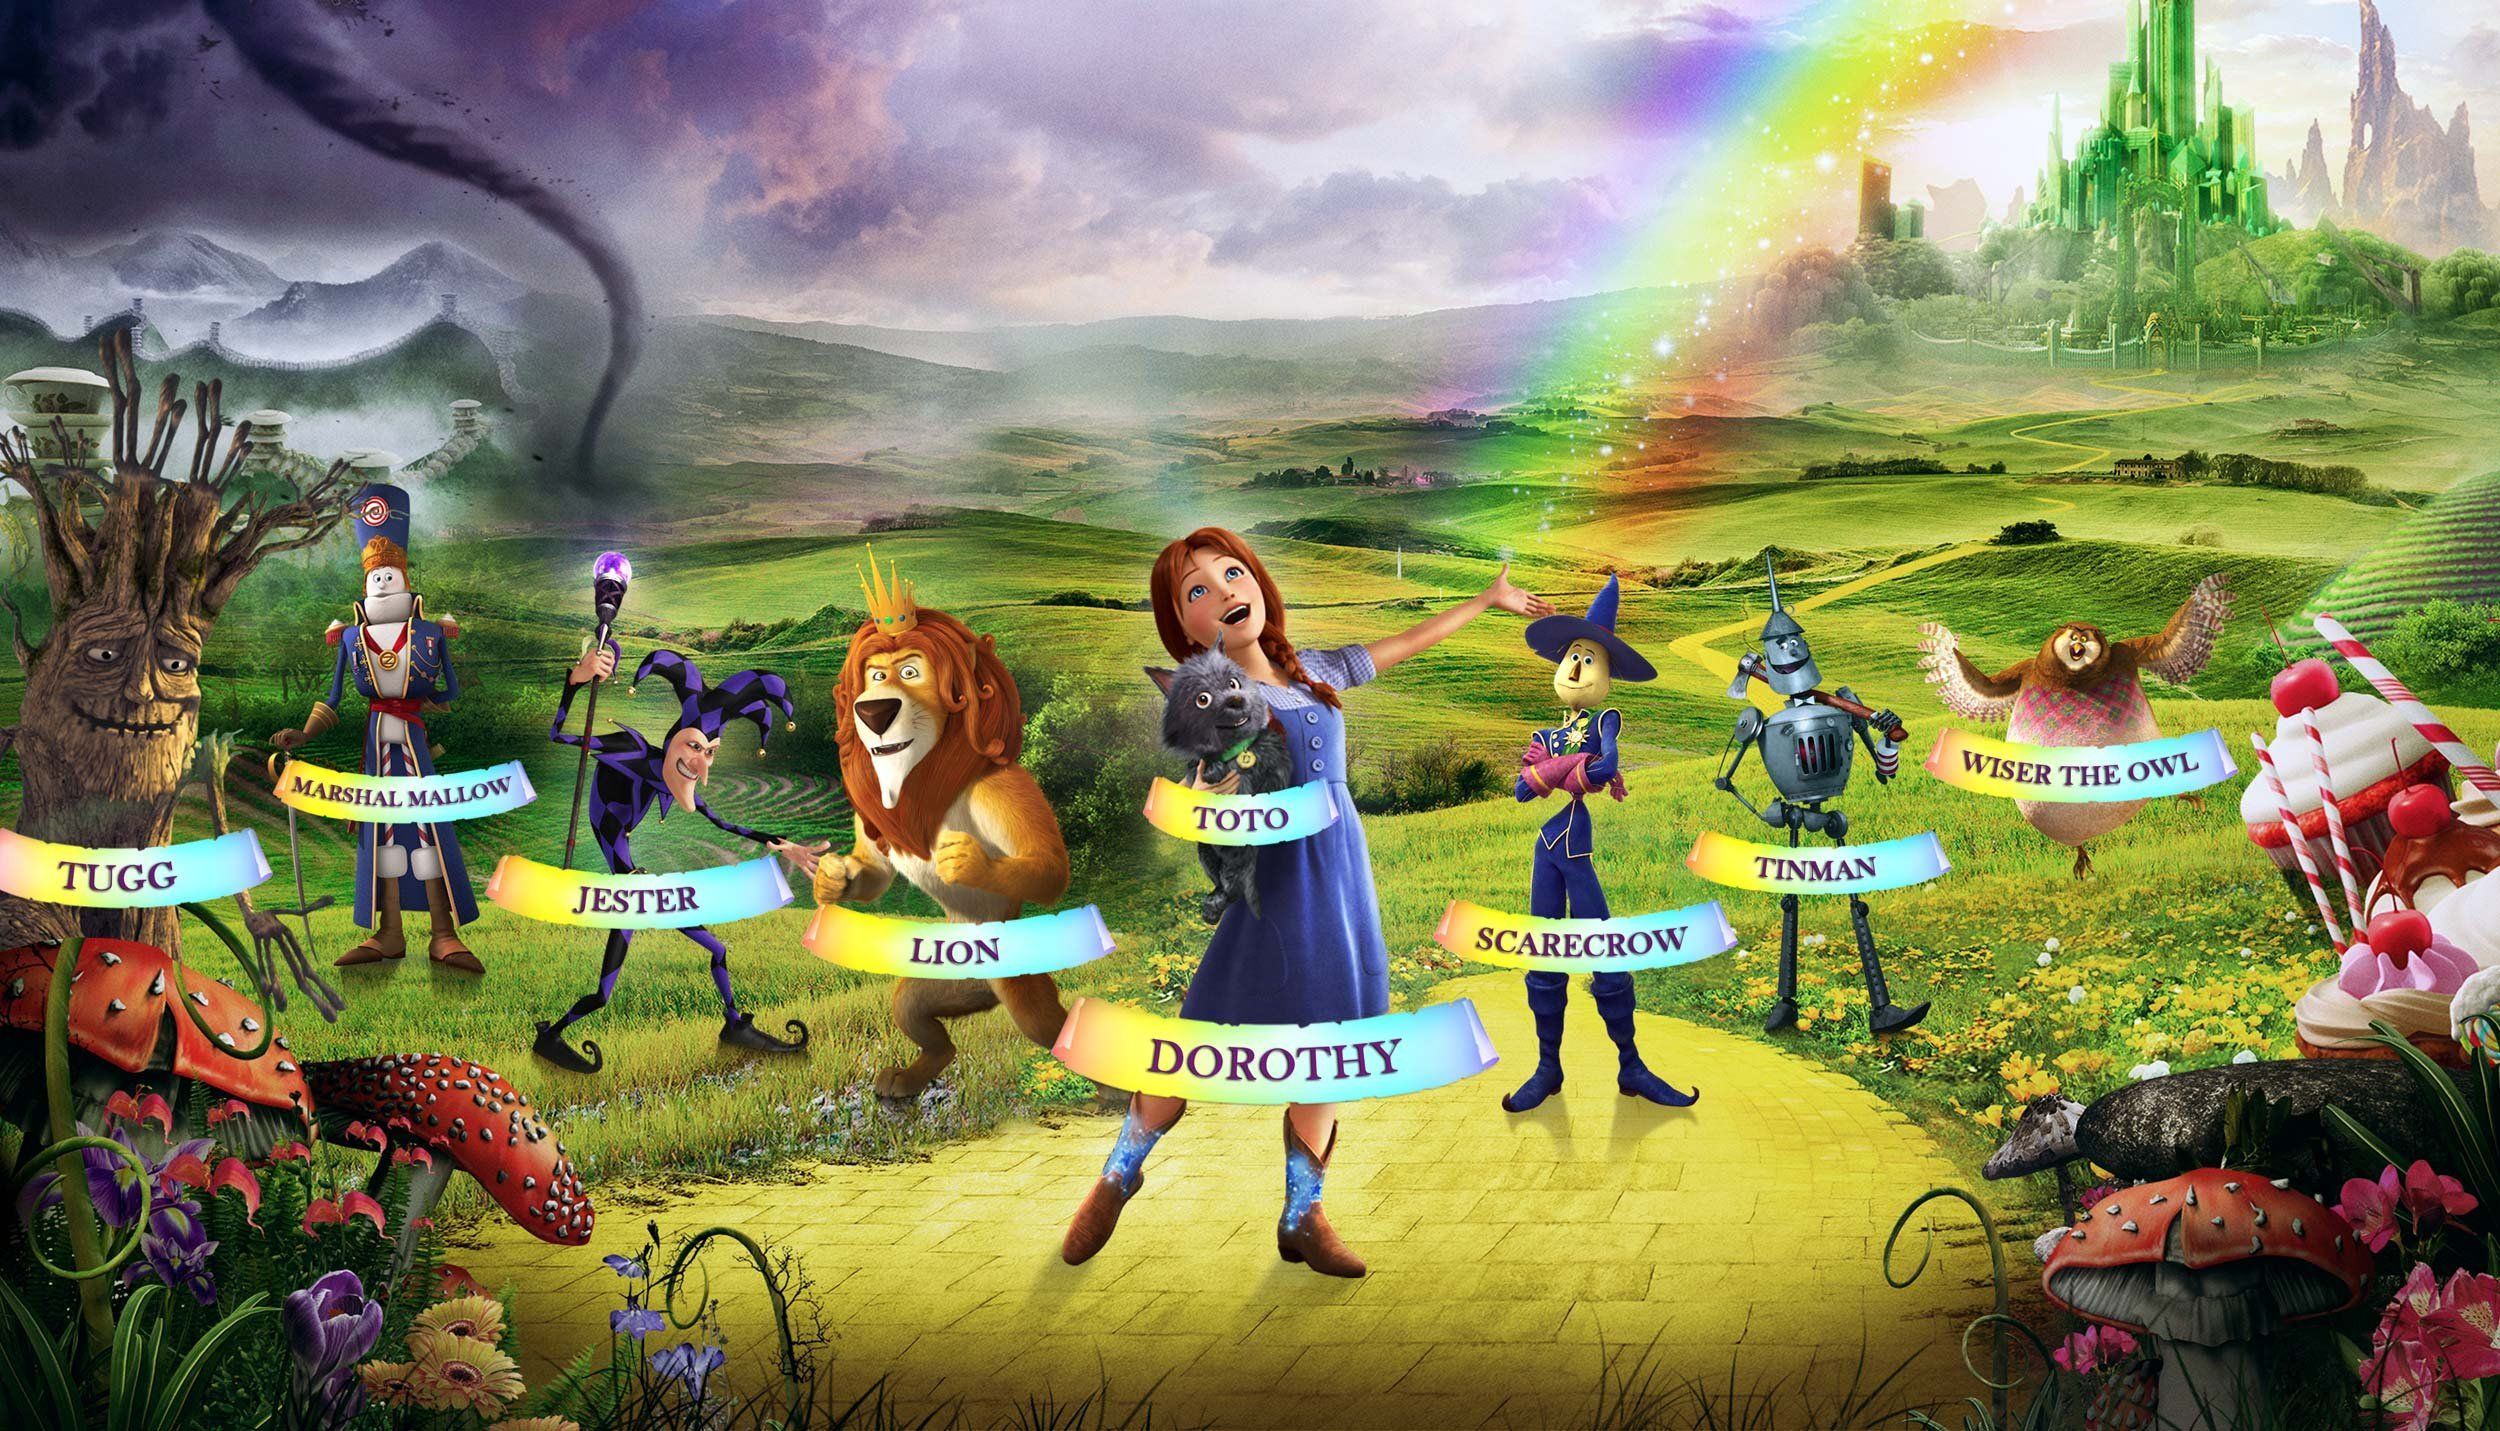 pic Wizard Of Oz Wallpaper the wizard of oz wallpaper posted by